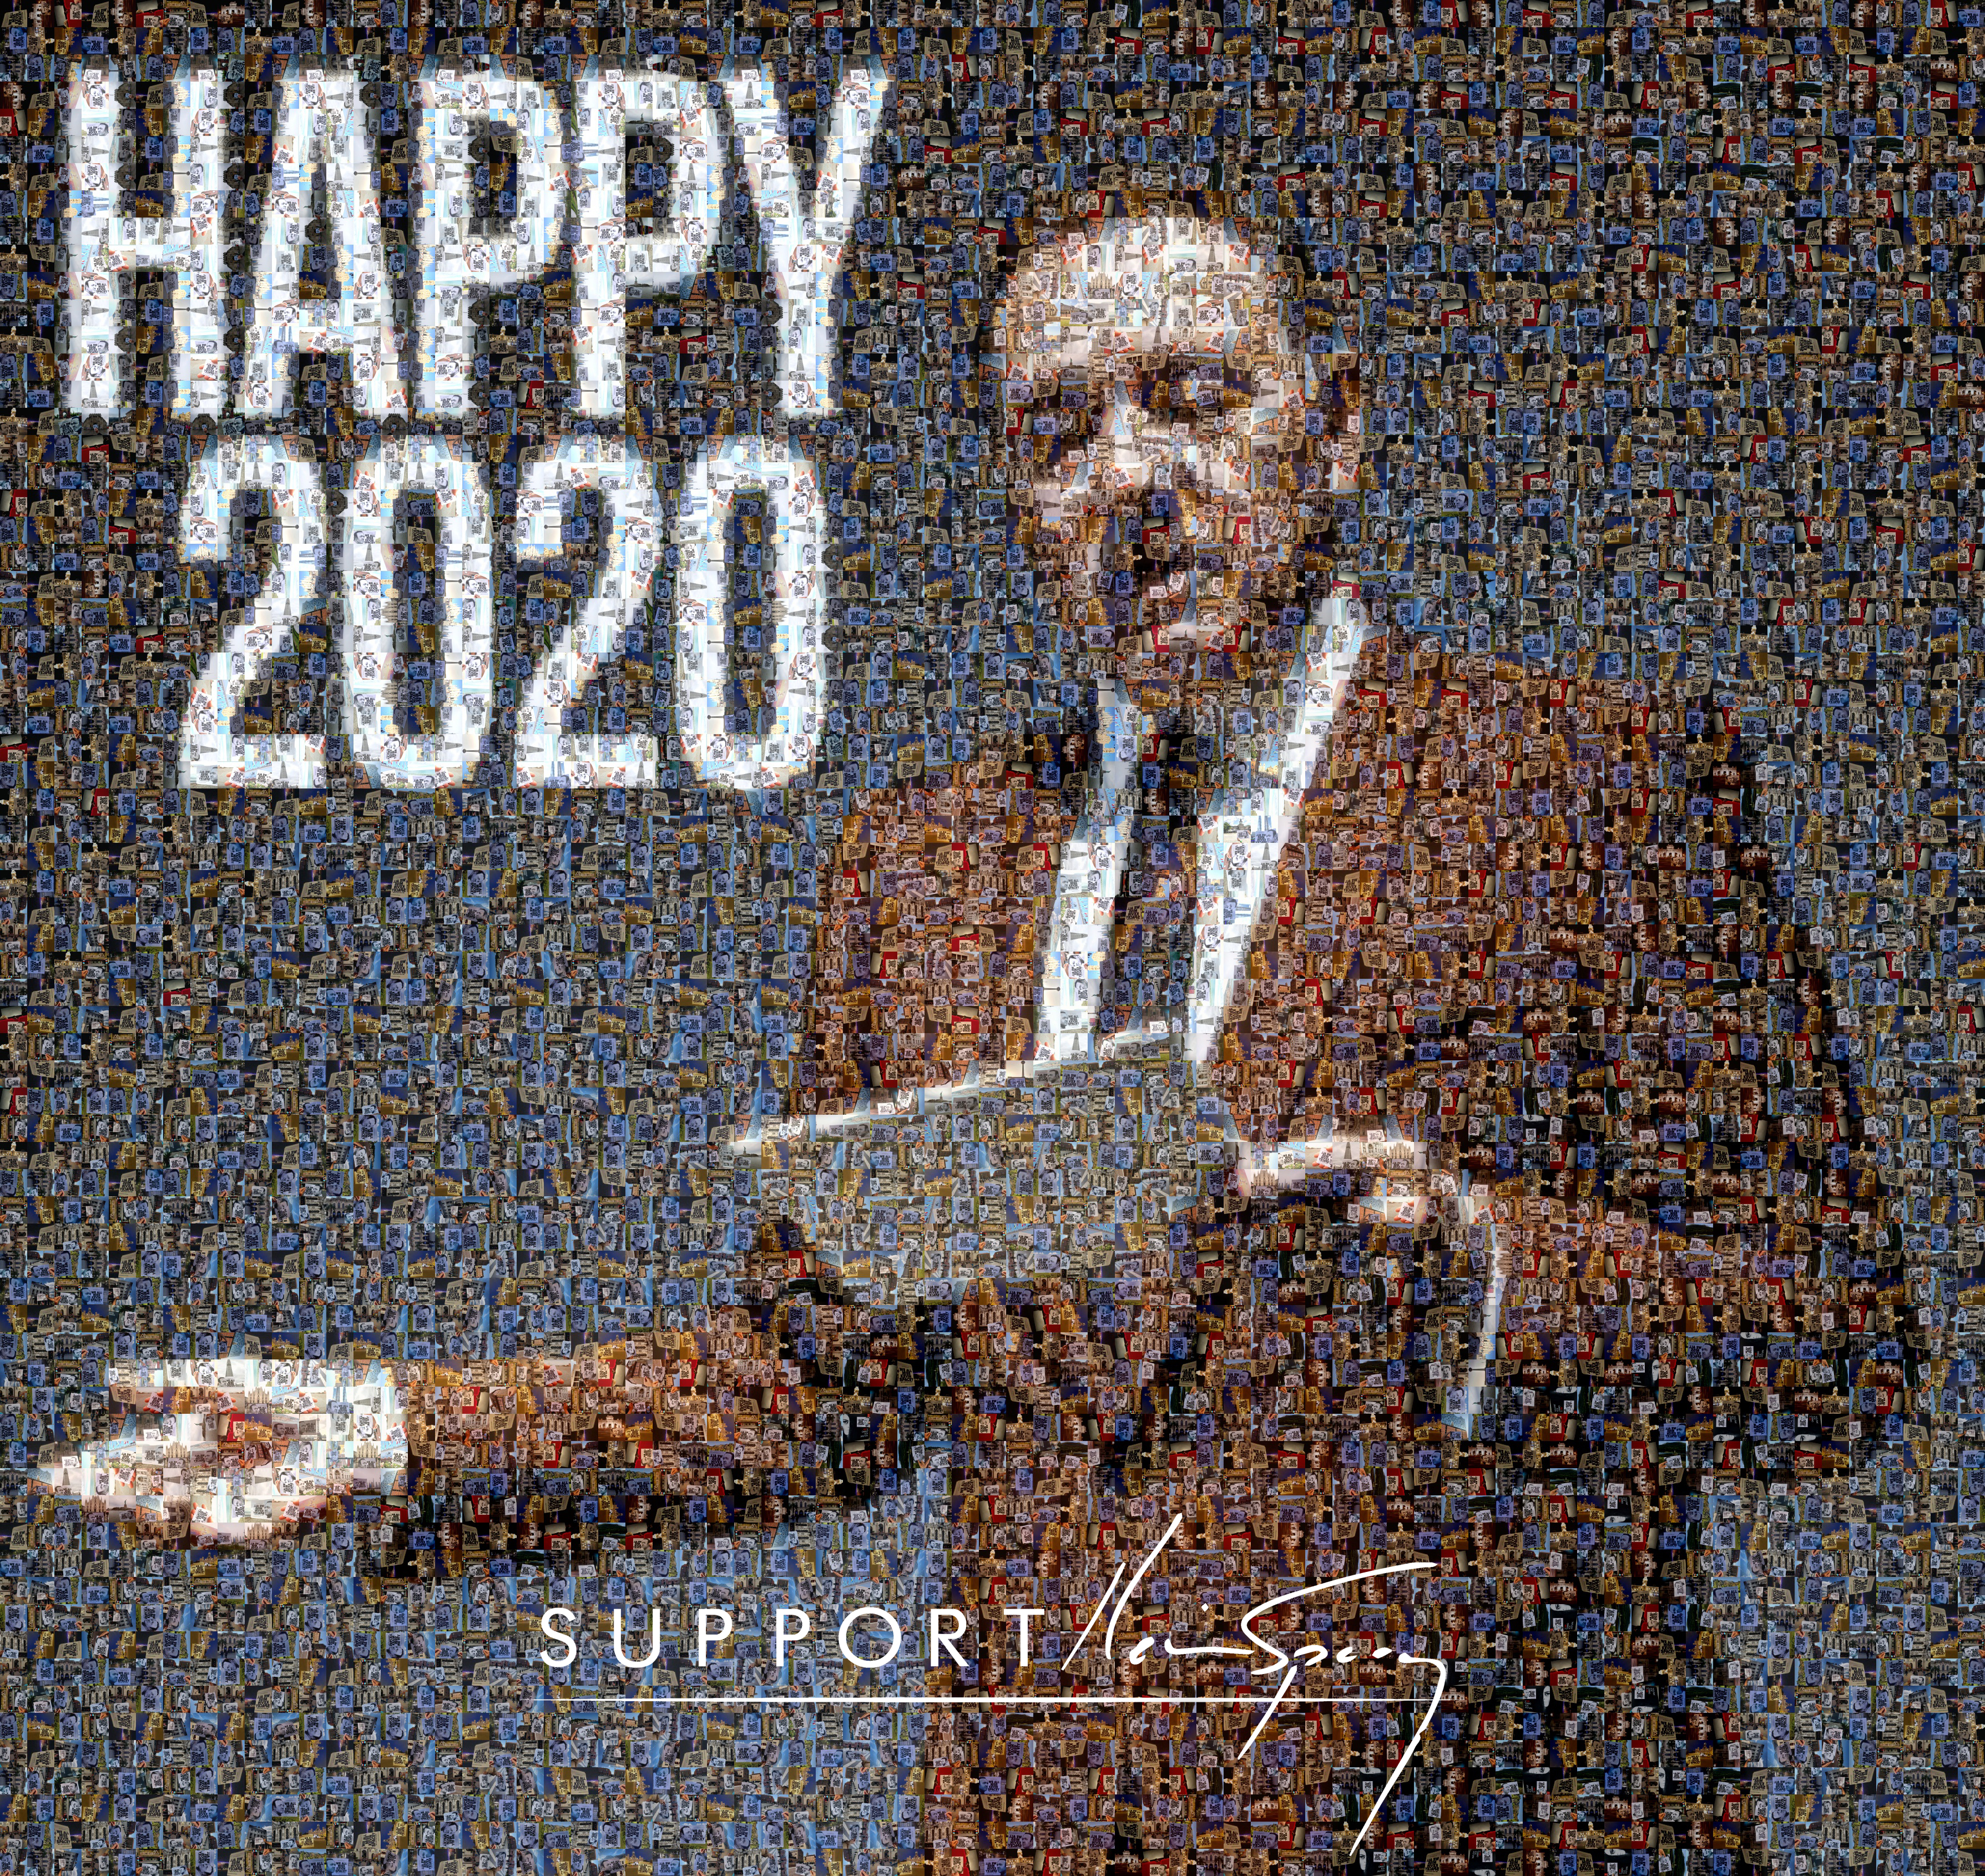 kevin spacey happy 2020 supportkevinspacey.com